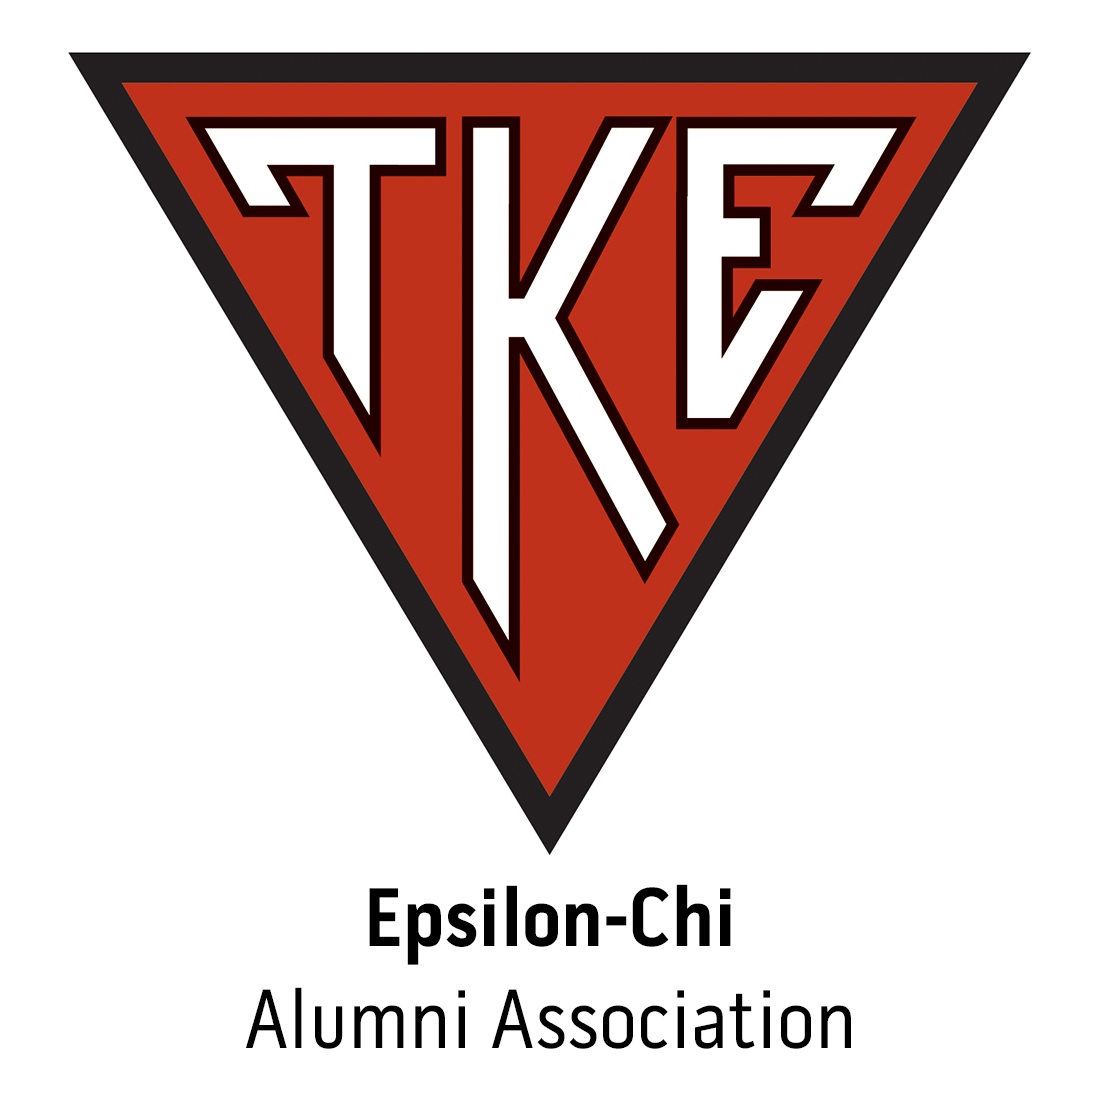 Epsilon-Chi Alumni Association for SUNY-Buffalo